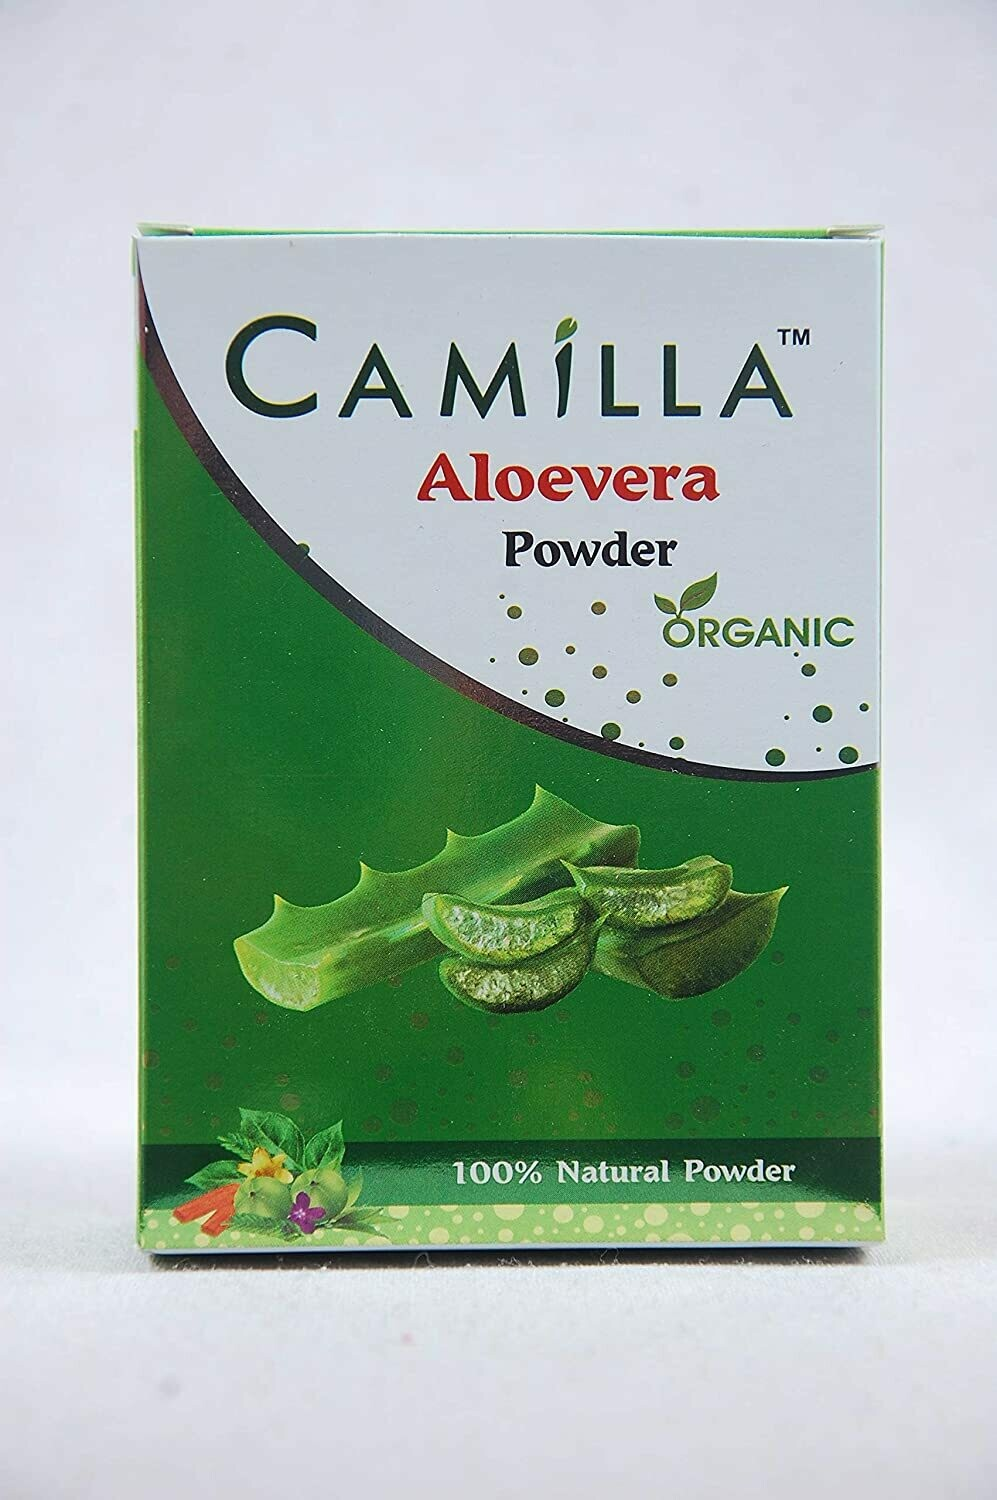 Camilla Aloevera Powder 100gm